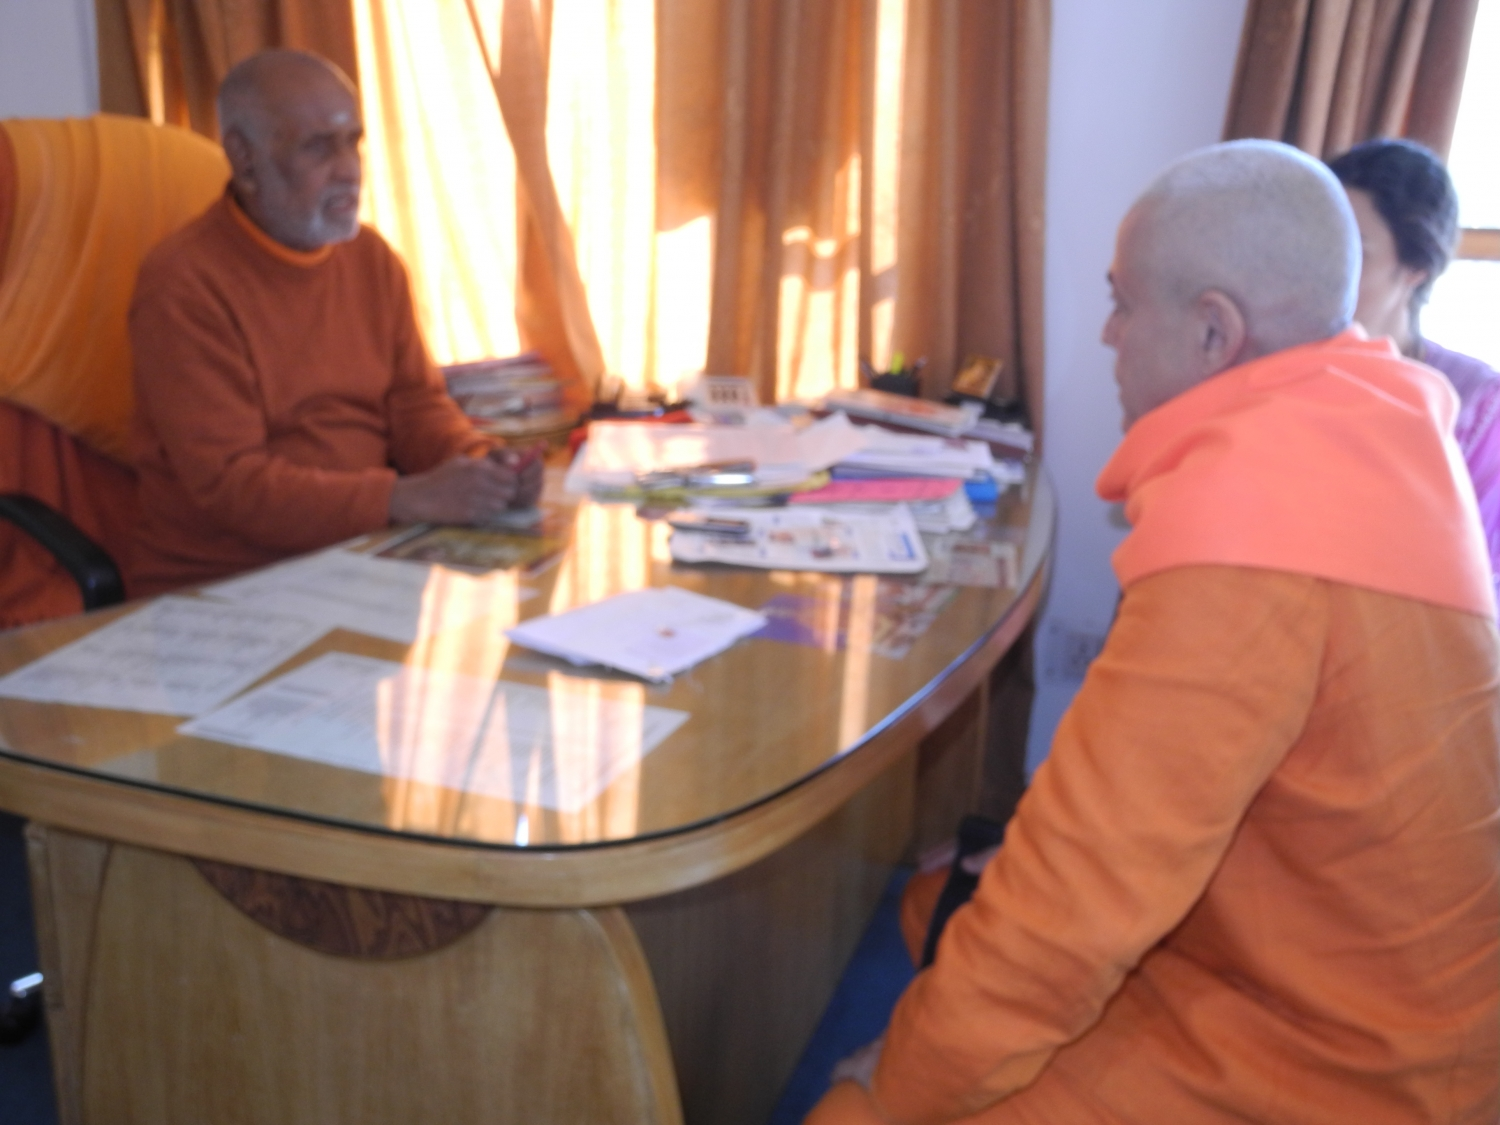 Visit of H.H. Jagat Guru Amrta Sūryānanda Mahā Rāja to the Shivánanda Áshrama - rshikesh, India - 2013, February